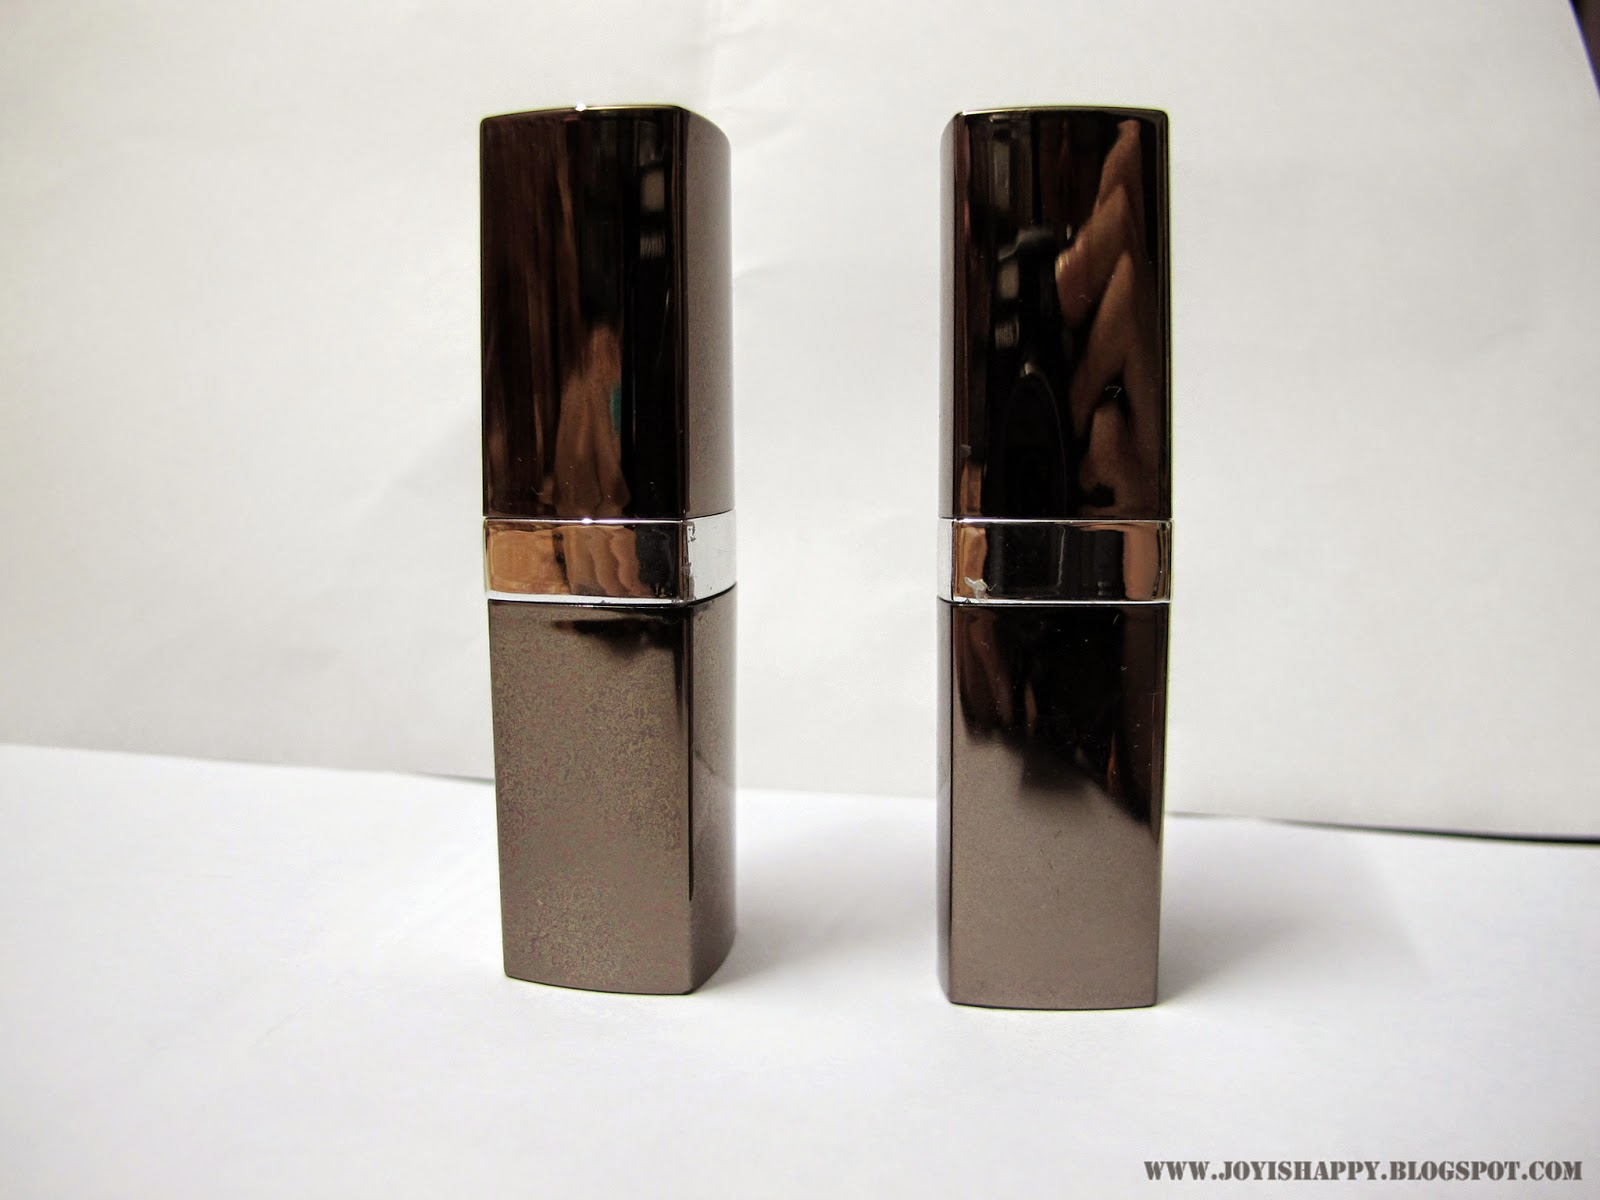 TheFaceShop Black Label Lipsticks review